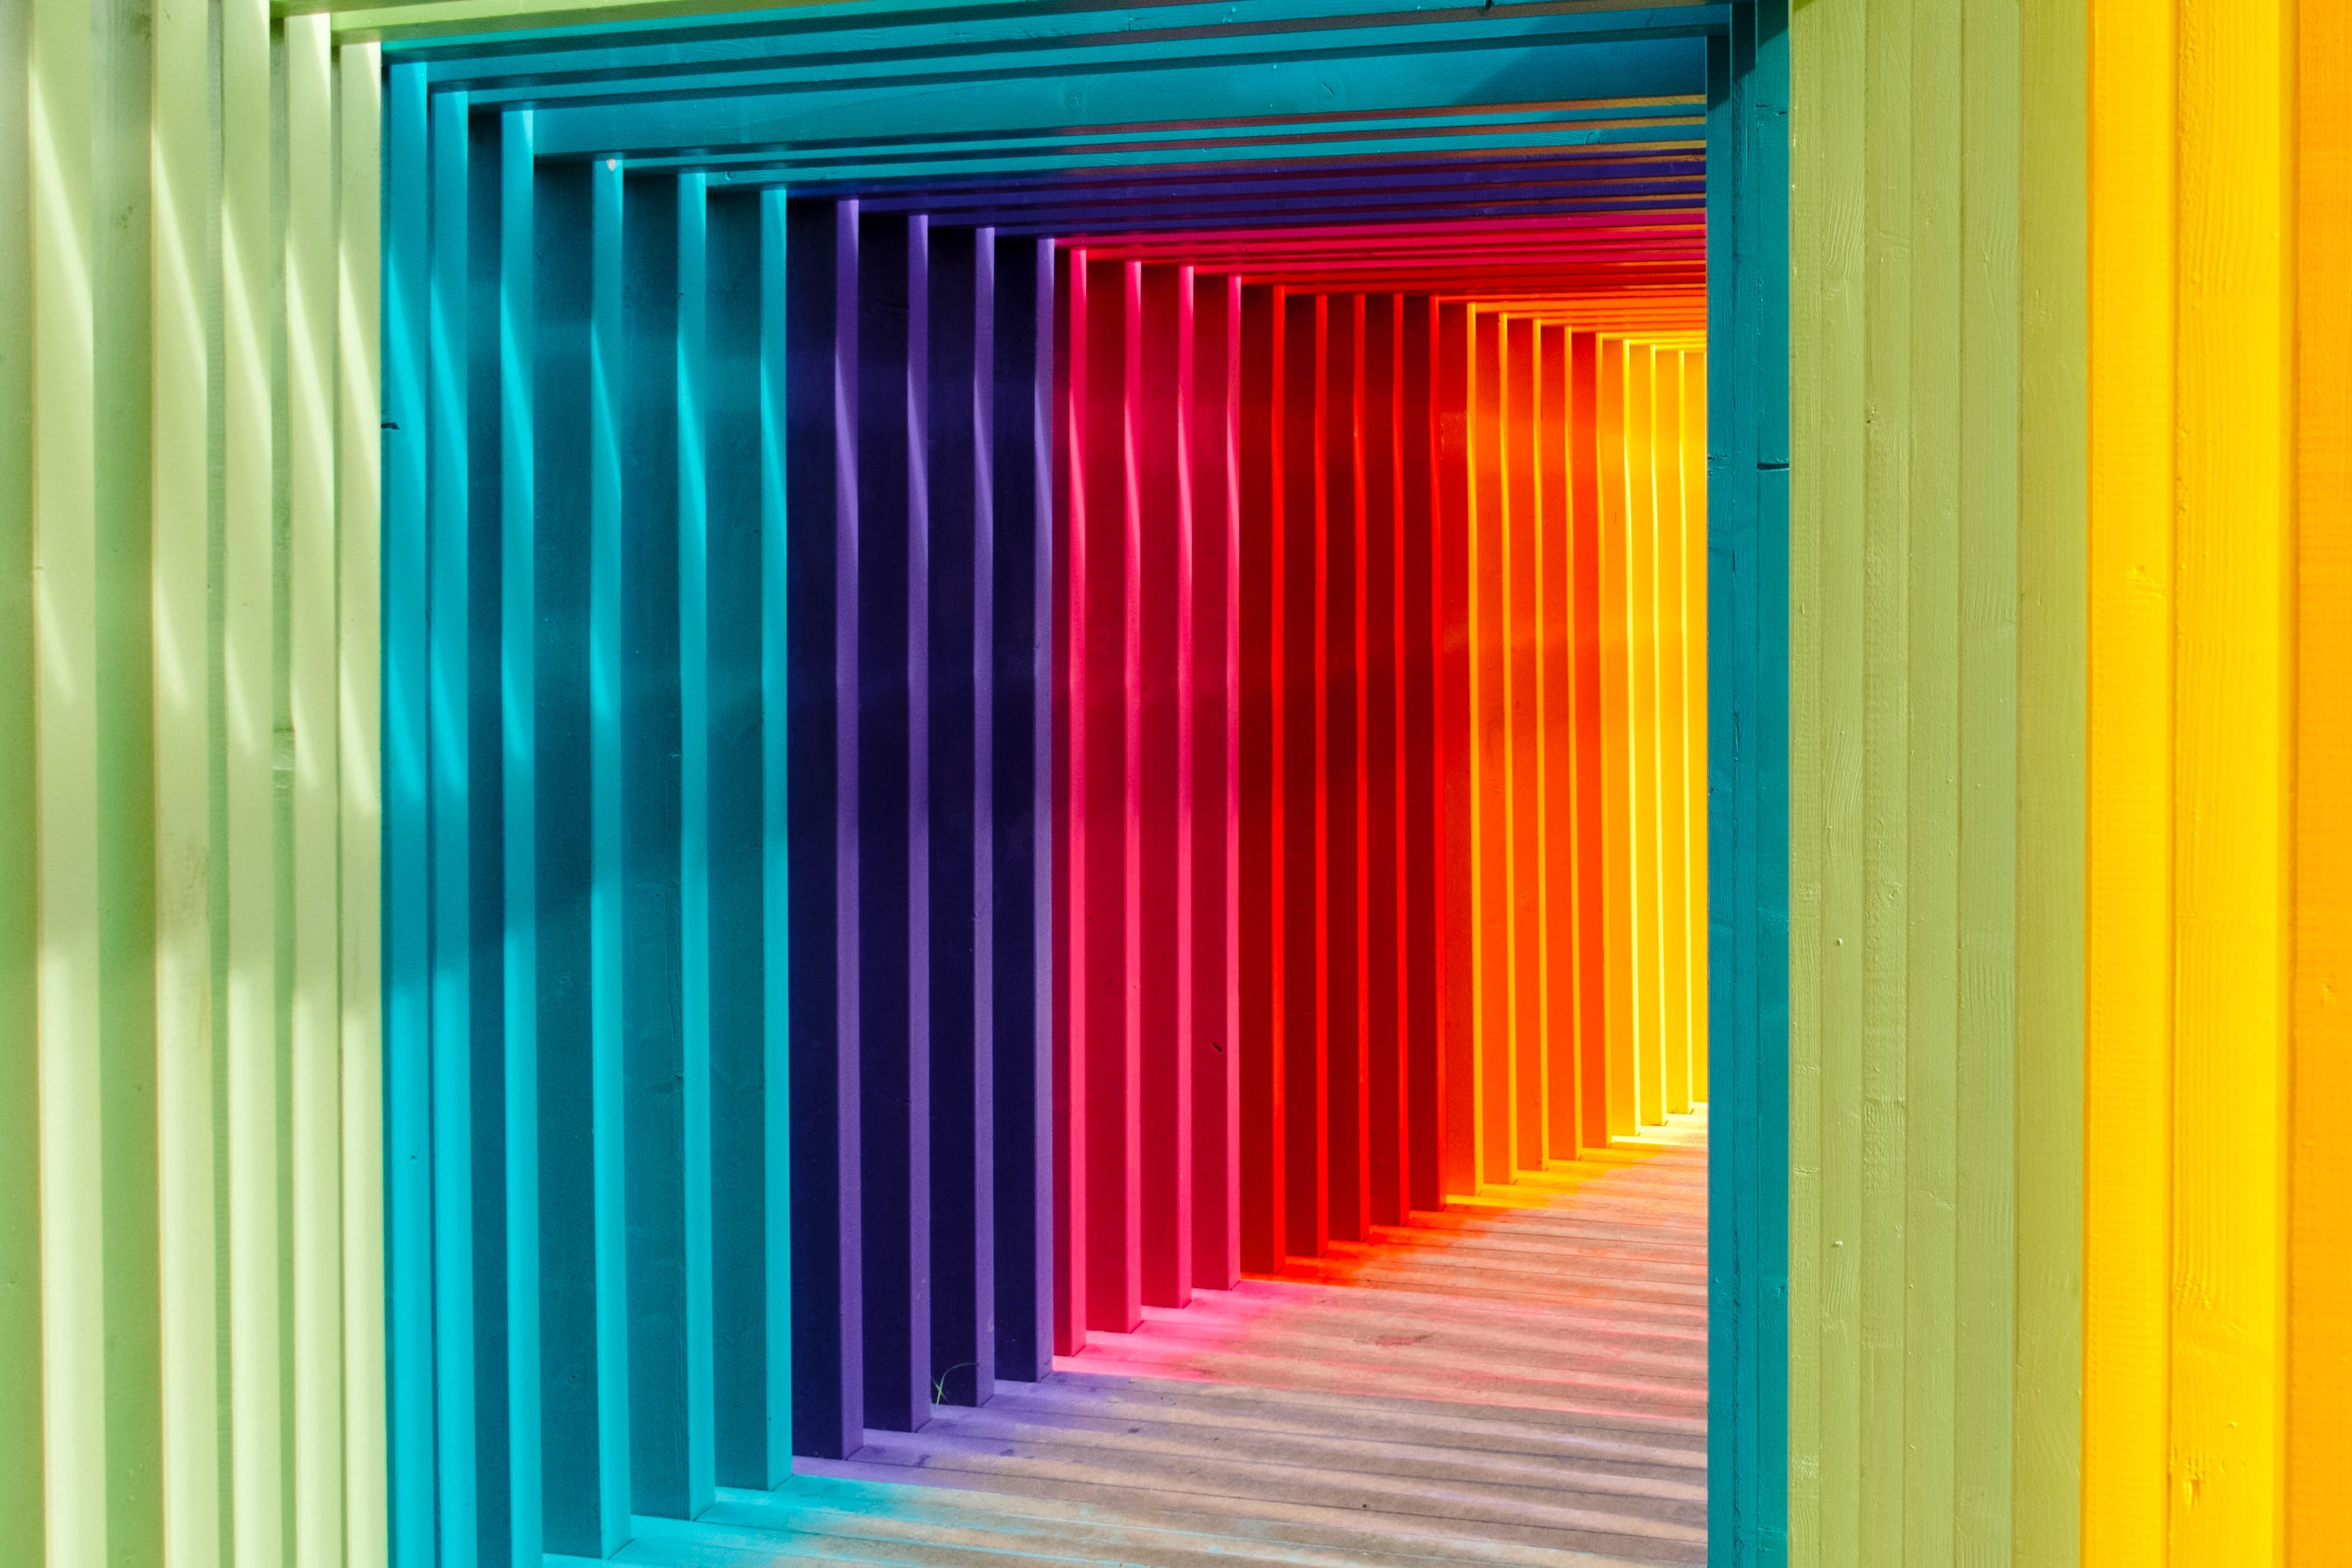 multicolored wall in shallow focus photography